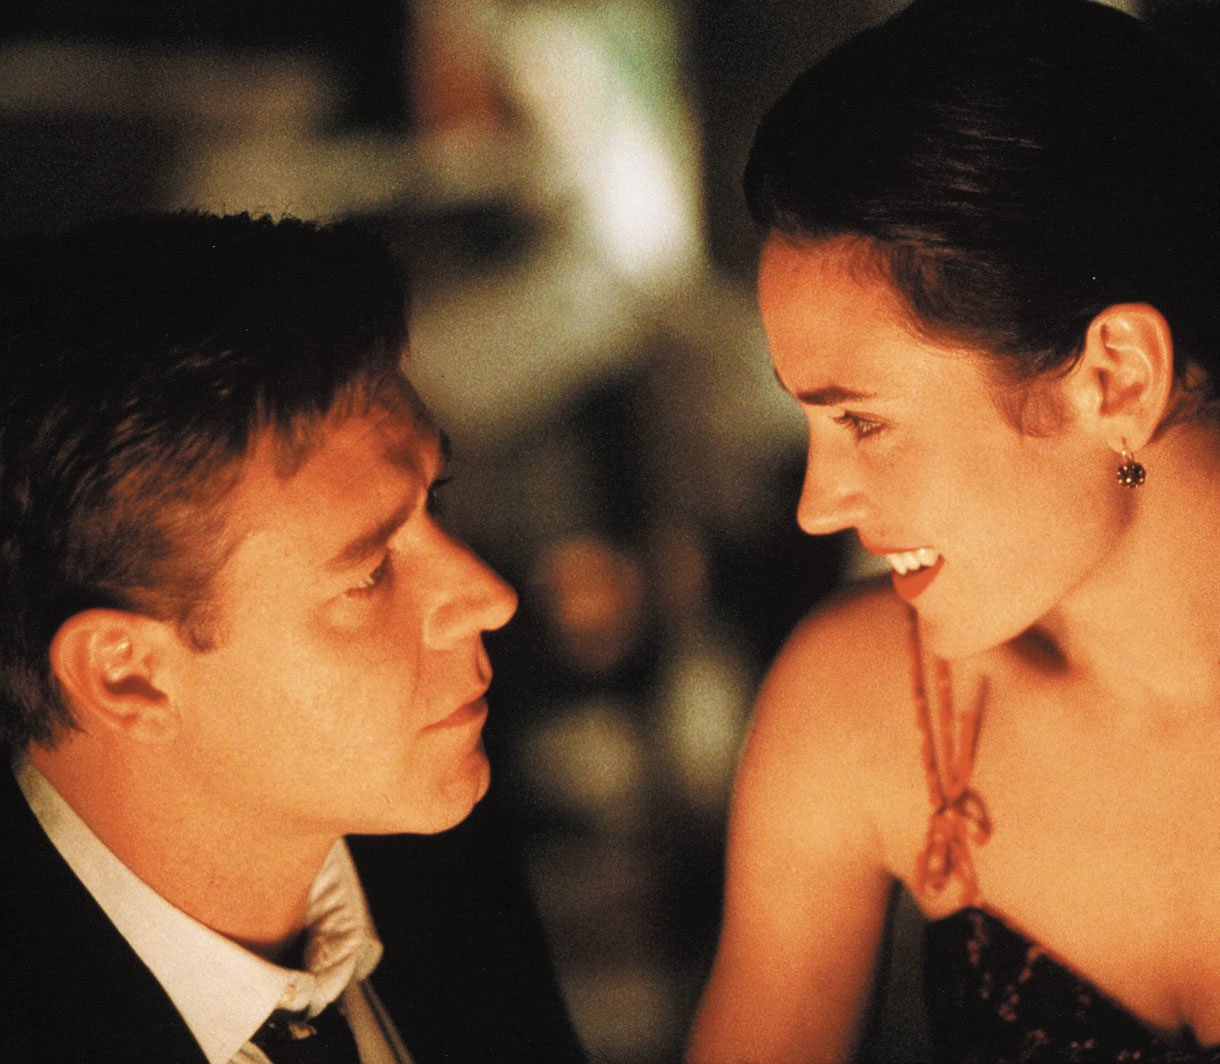 Russell Crowe Jennifer Connelly A Beautiful Mind e1609950335984 20 Things You Probably Didn't Know About Jennifer Connelly